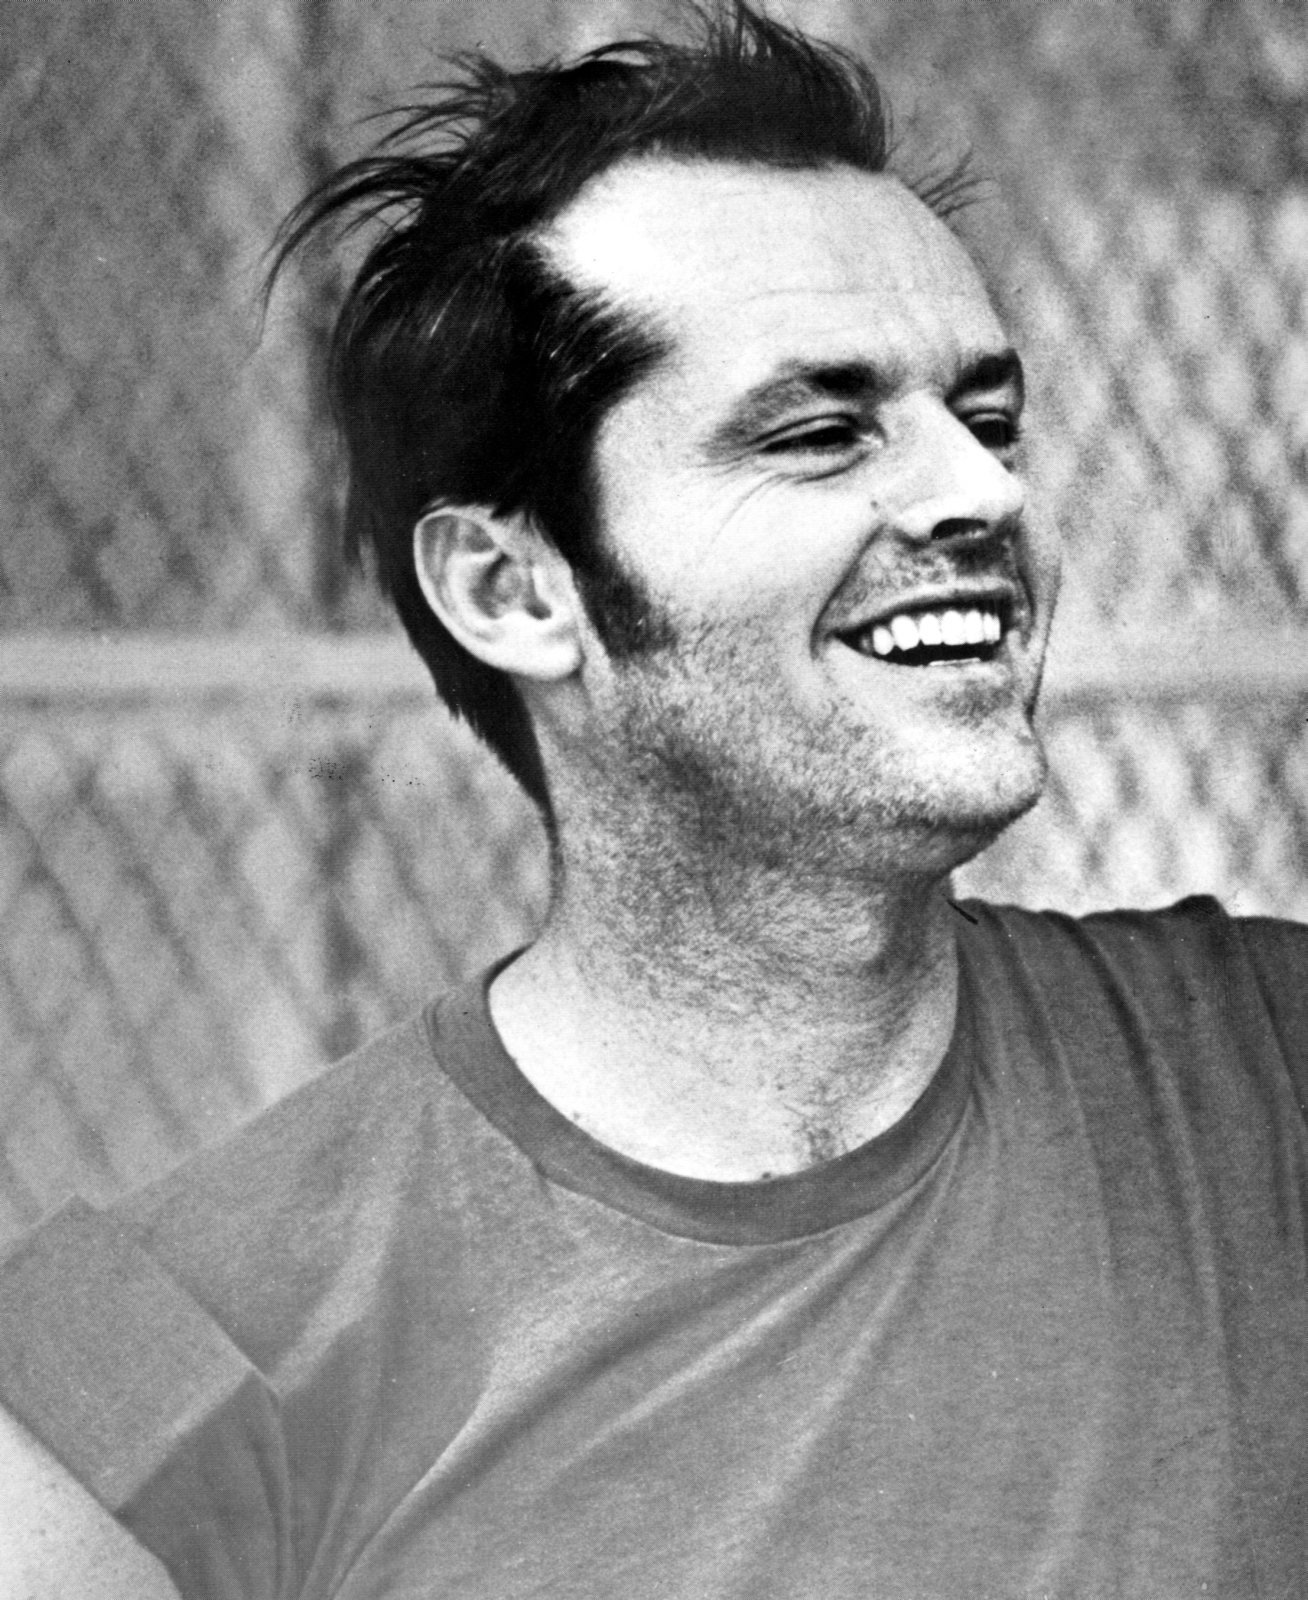 one flew over the cookoos nest Only the second film in history to sweep all five major oscars – best picture,  director, actor, actress and screenplay – one flew over the cuckoo's nest is  one of.